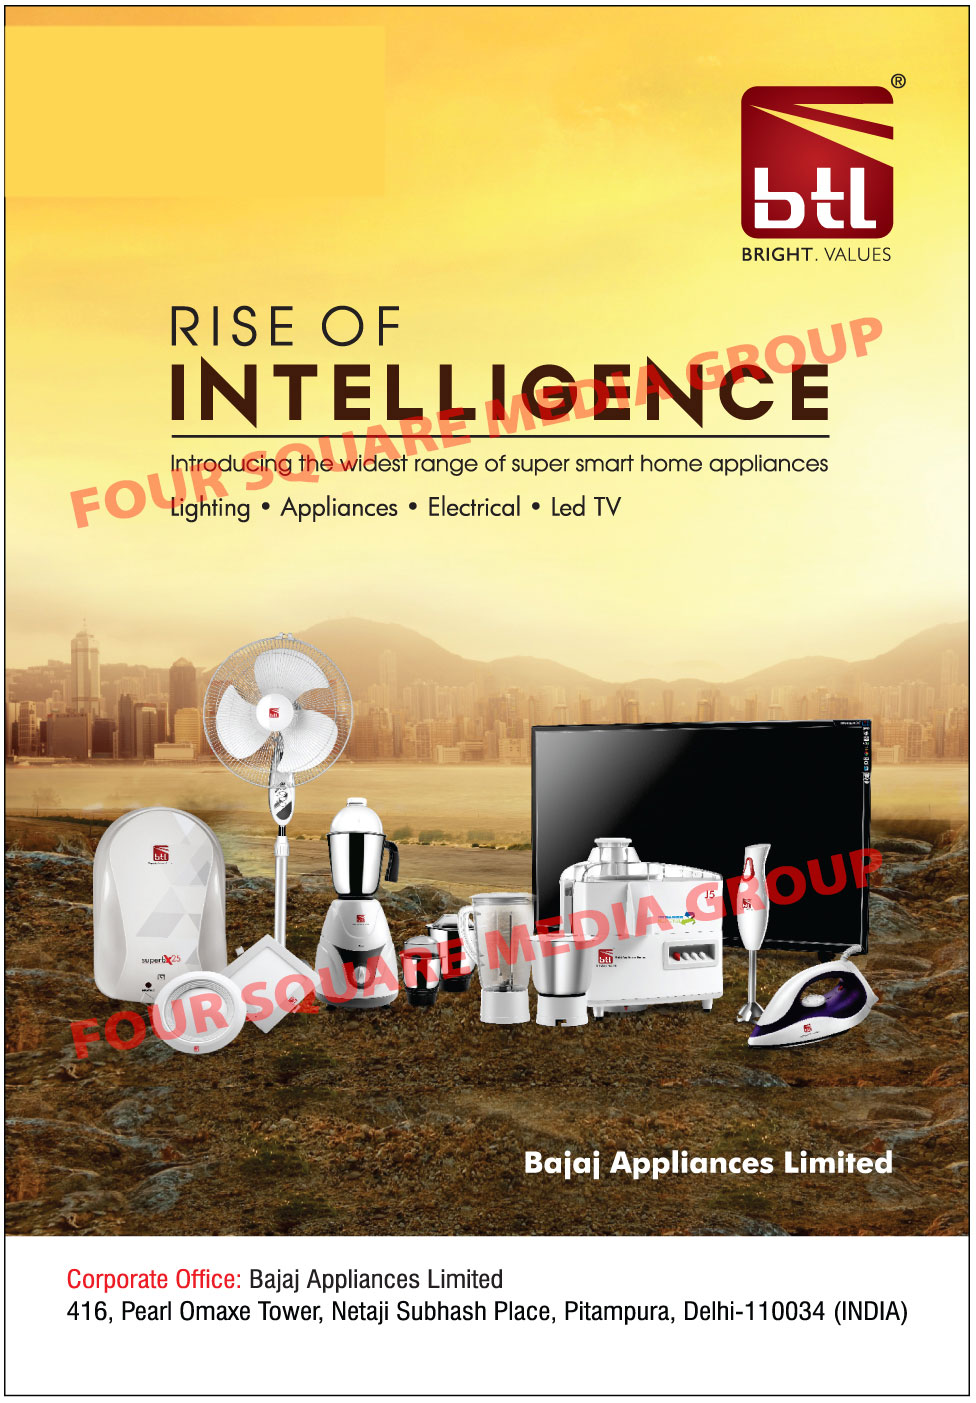 Lights, Light Appliances, Electrical Products, Led Lights, LED Down lights, LED Bulbs, Home Appliances,  Mixer Grinders, Exhaust Fans, Hand Blenders, Electric Iron, Pedestal Fan